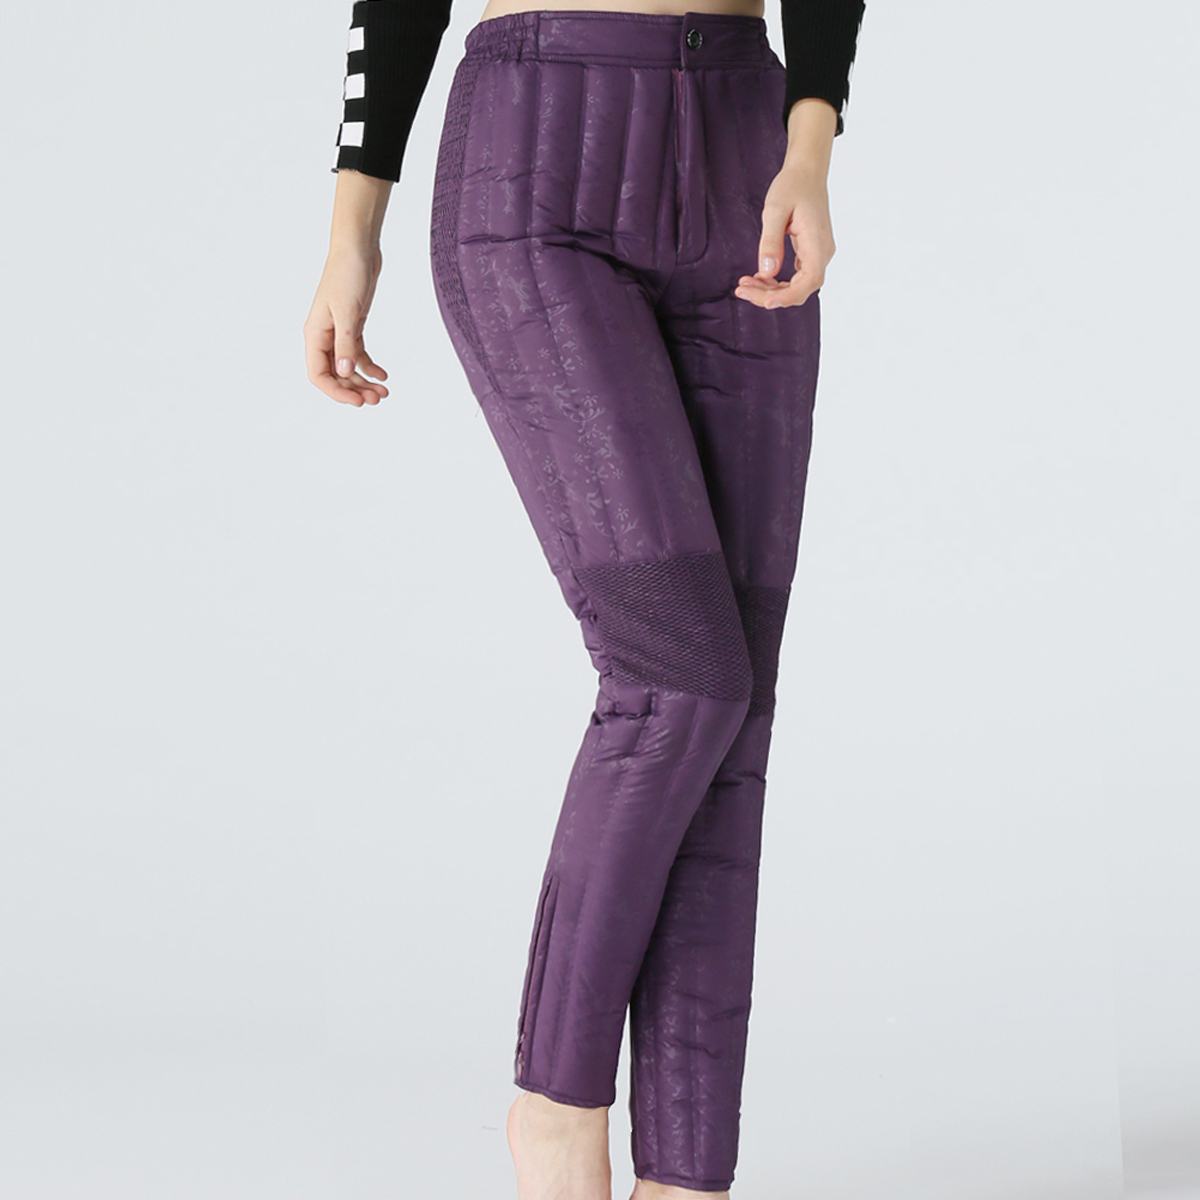 Color classification: Ladies purple